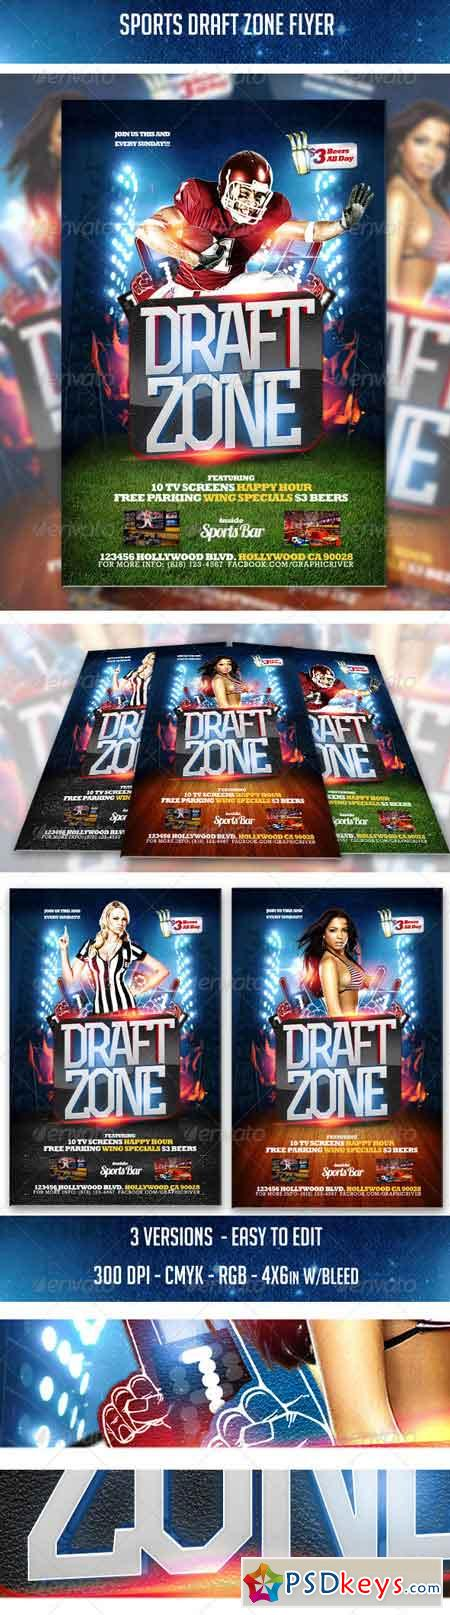 Sports Draft Zone Flyer 5587983